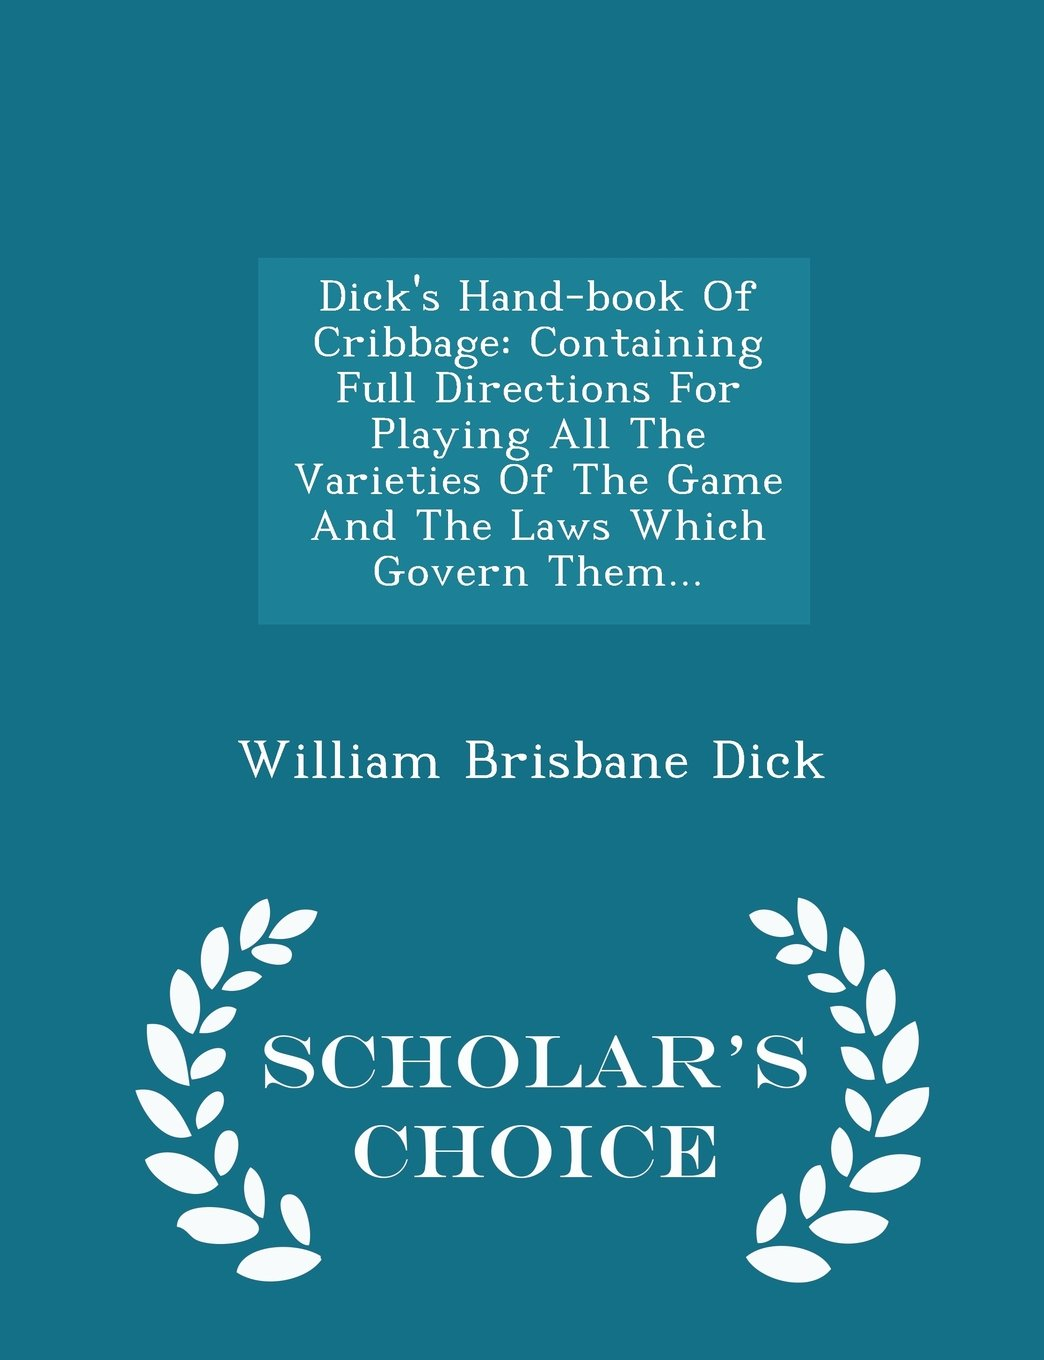 Dick's Hand-book Of Cribbage: Containing Full Directions For Playing All The Varieties Of The Game And The Laws Which Govern Them... - Scholar's Choice Edition pdf epub